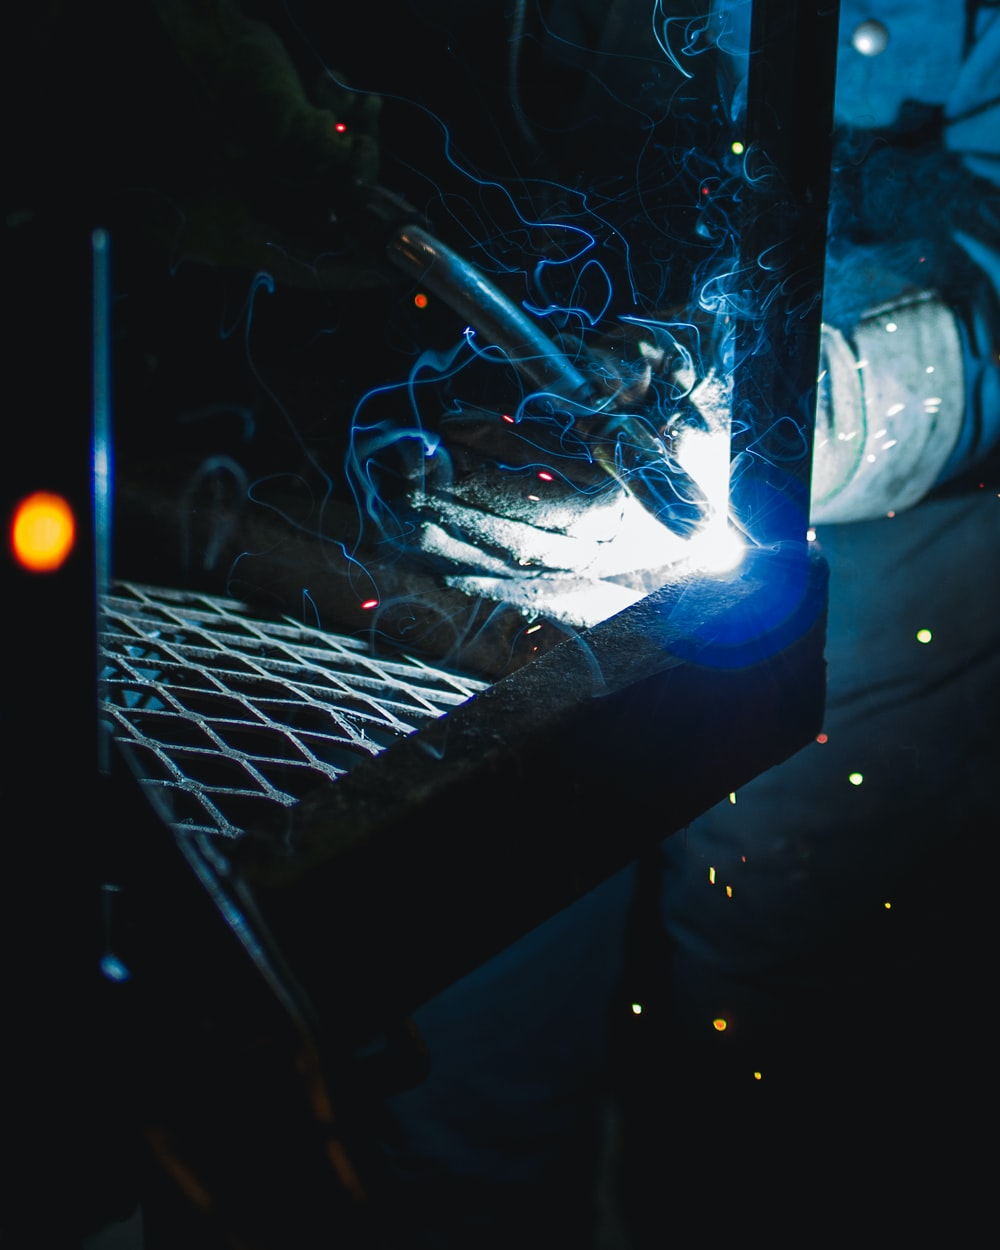 person holding a welding equipment